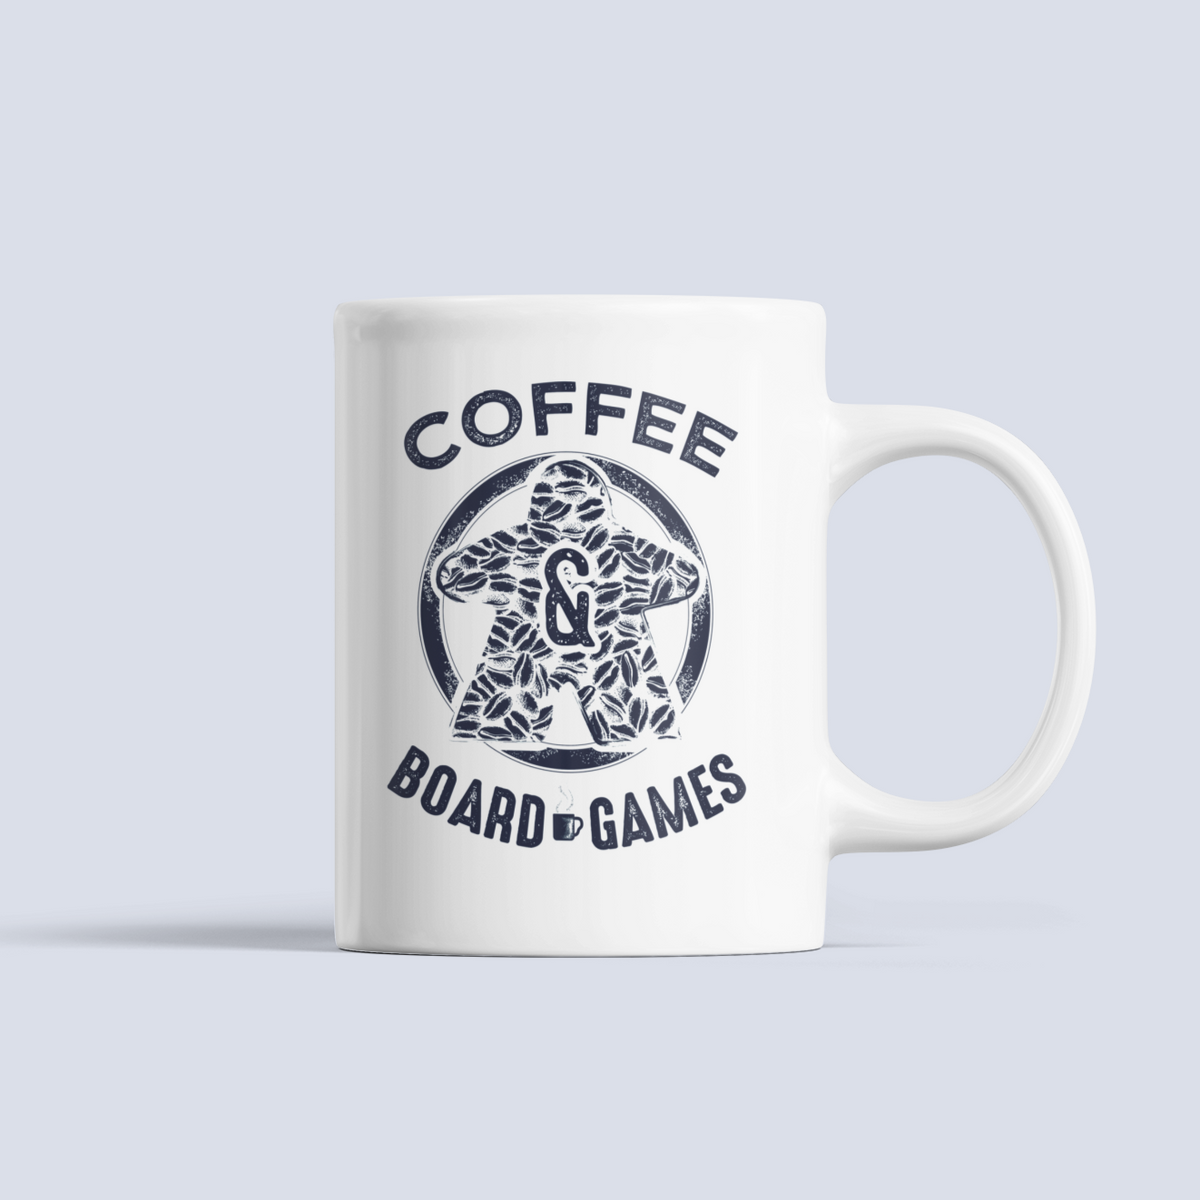 Coffee Bean Meeple Board Game Ceramic Mug